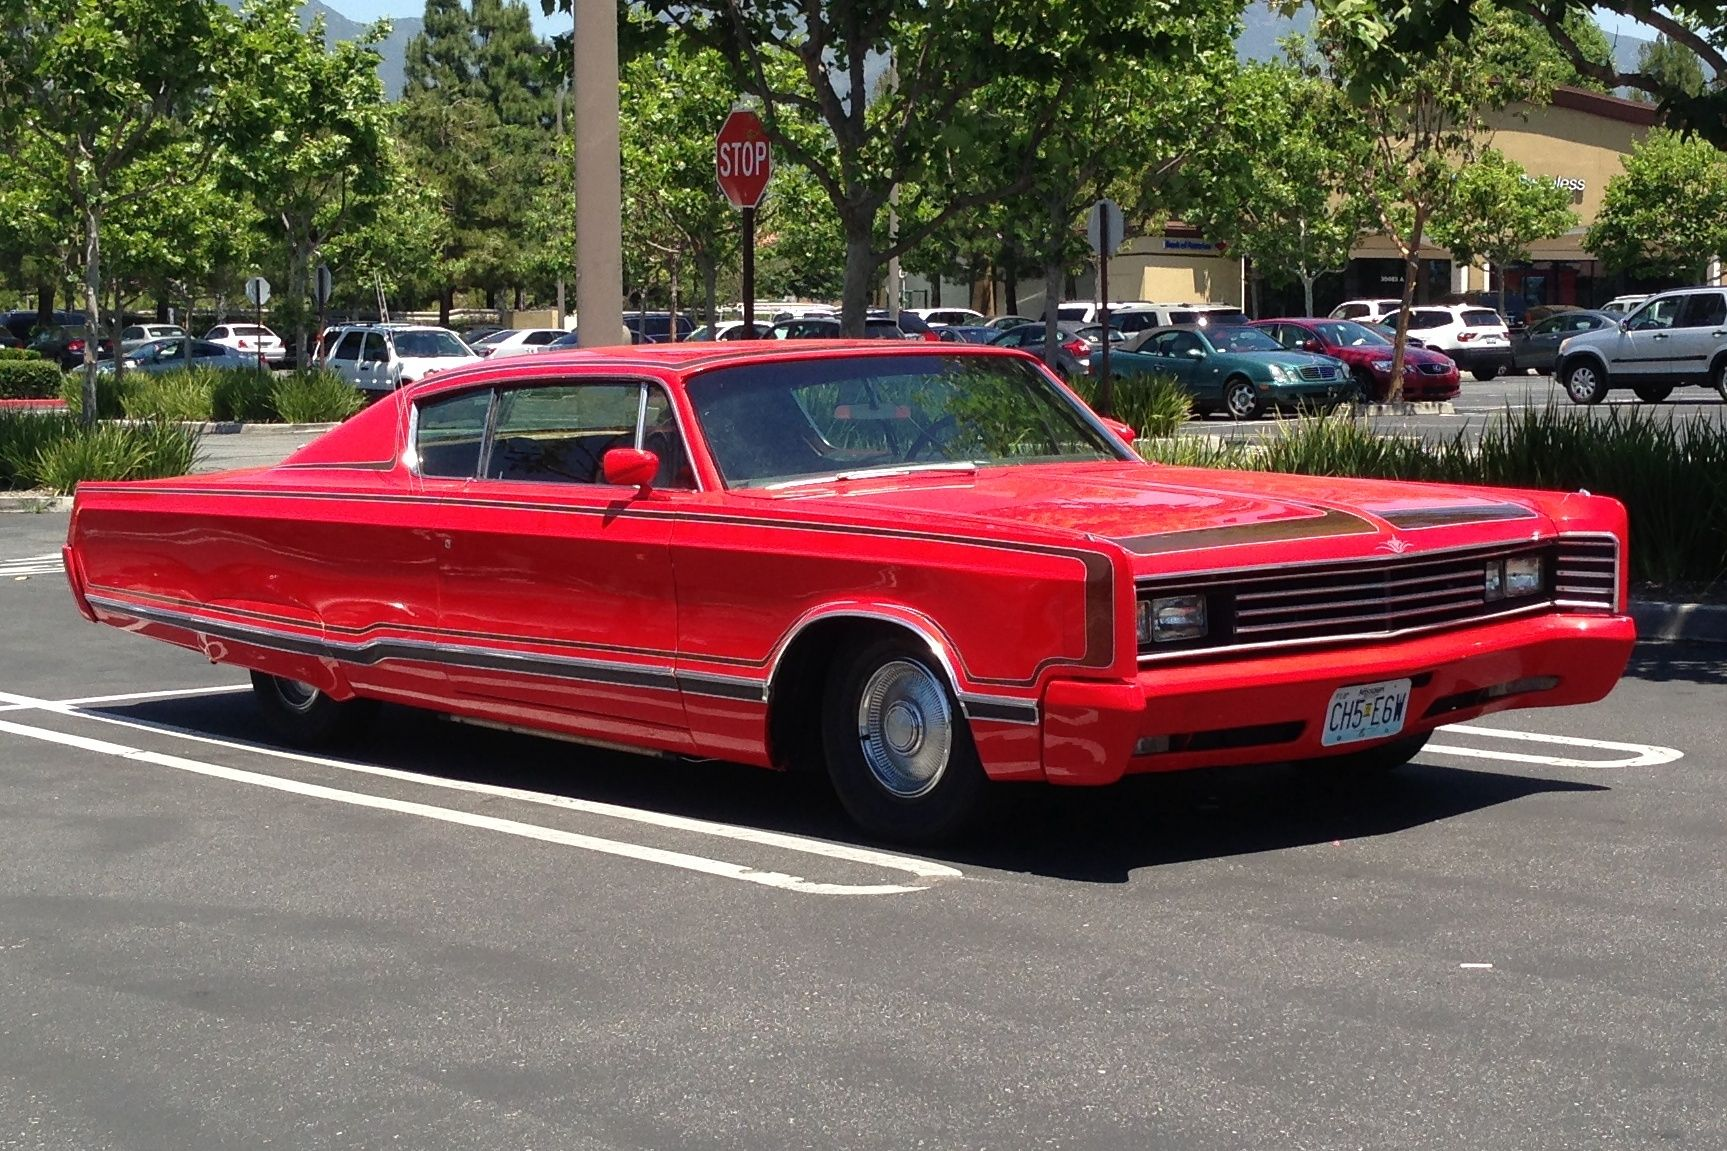 Custom 67 or 68 chrysler 300 spotted in rancho santa margarita custom 67 or 68 chrysler 300 spotted in rancho santa margarita sciox Image collections